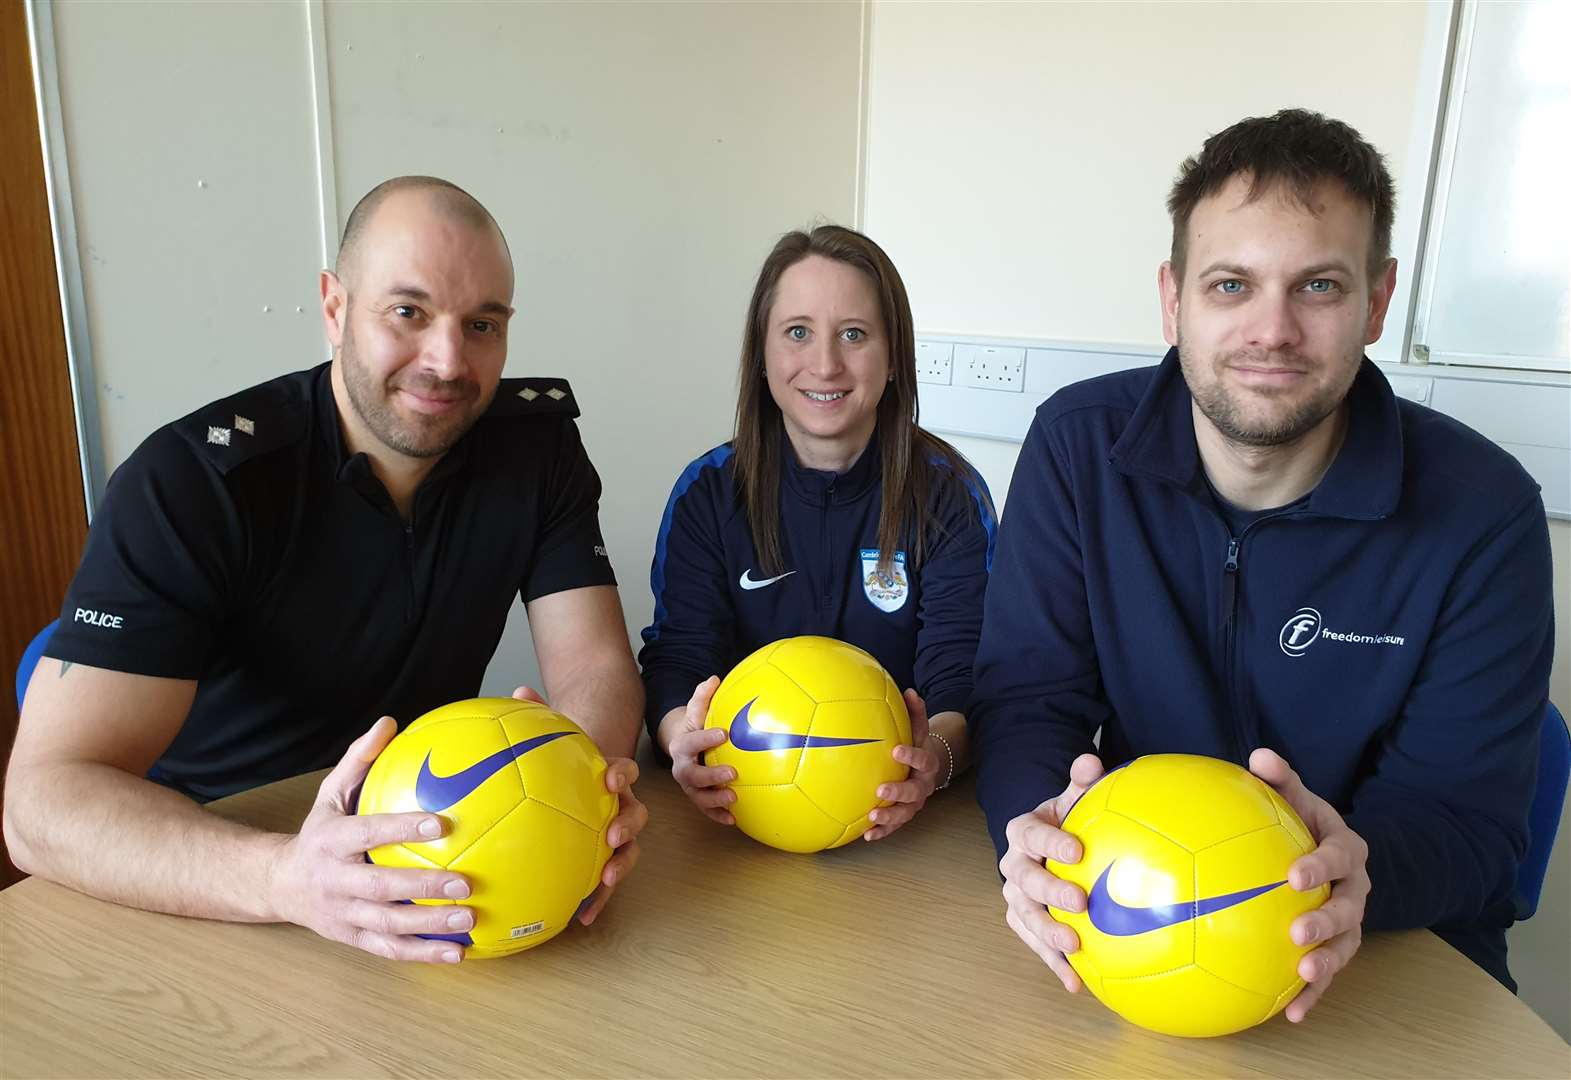 It's free football for boys and girls - and a chance to get sports qualifications